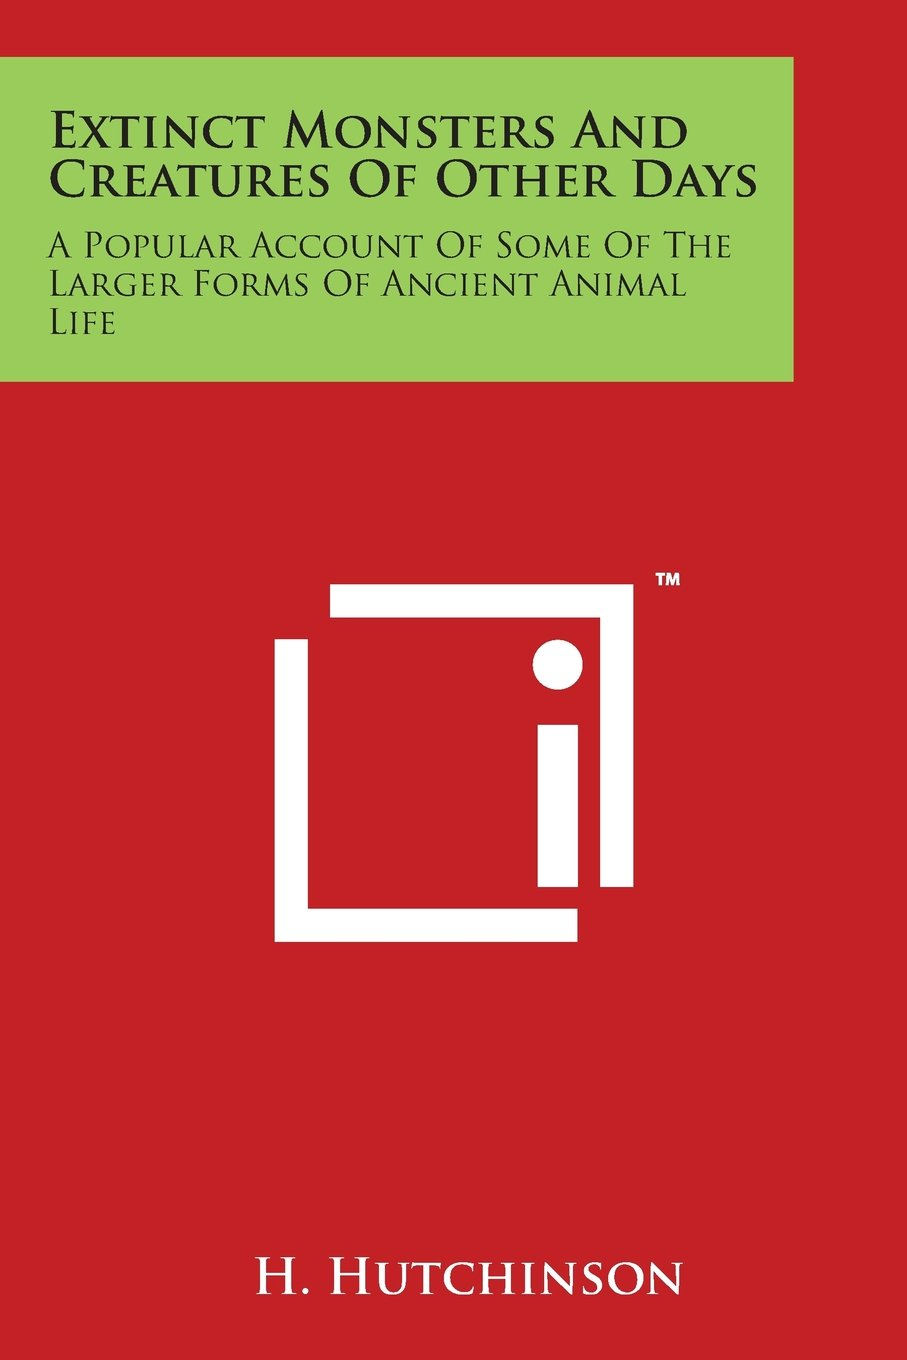 Extinct Monsters and Creatures of Other Days: A Popular Account of Some of the Larger Forms of Ancient Animal Life pdf epub